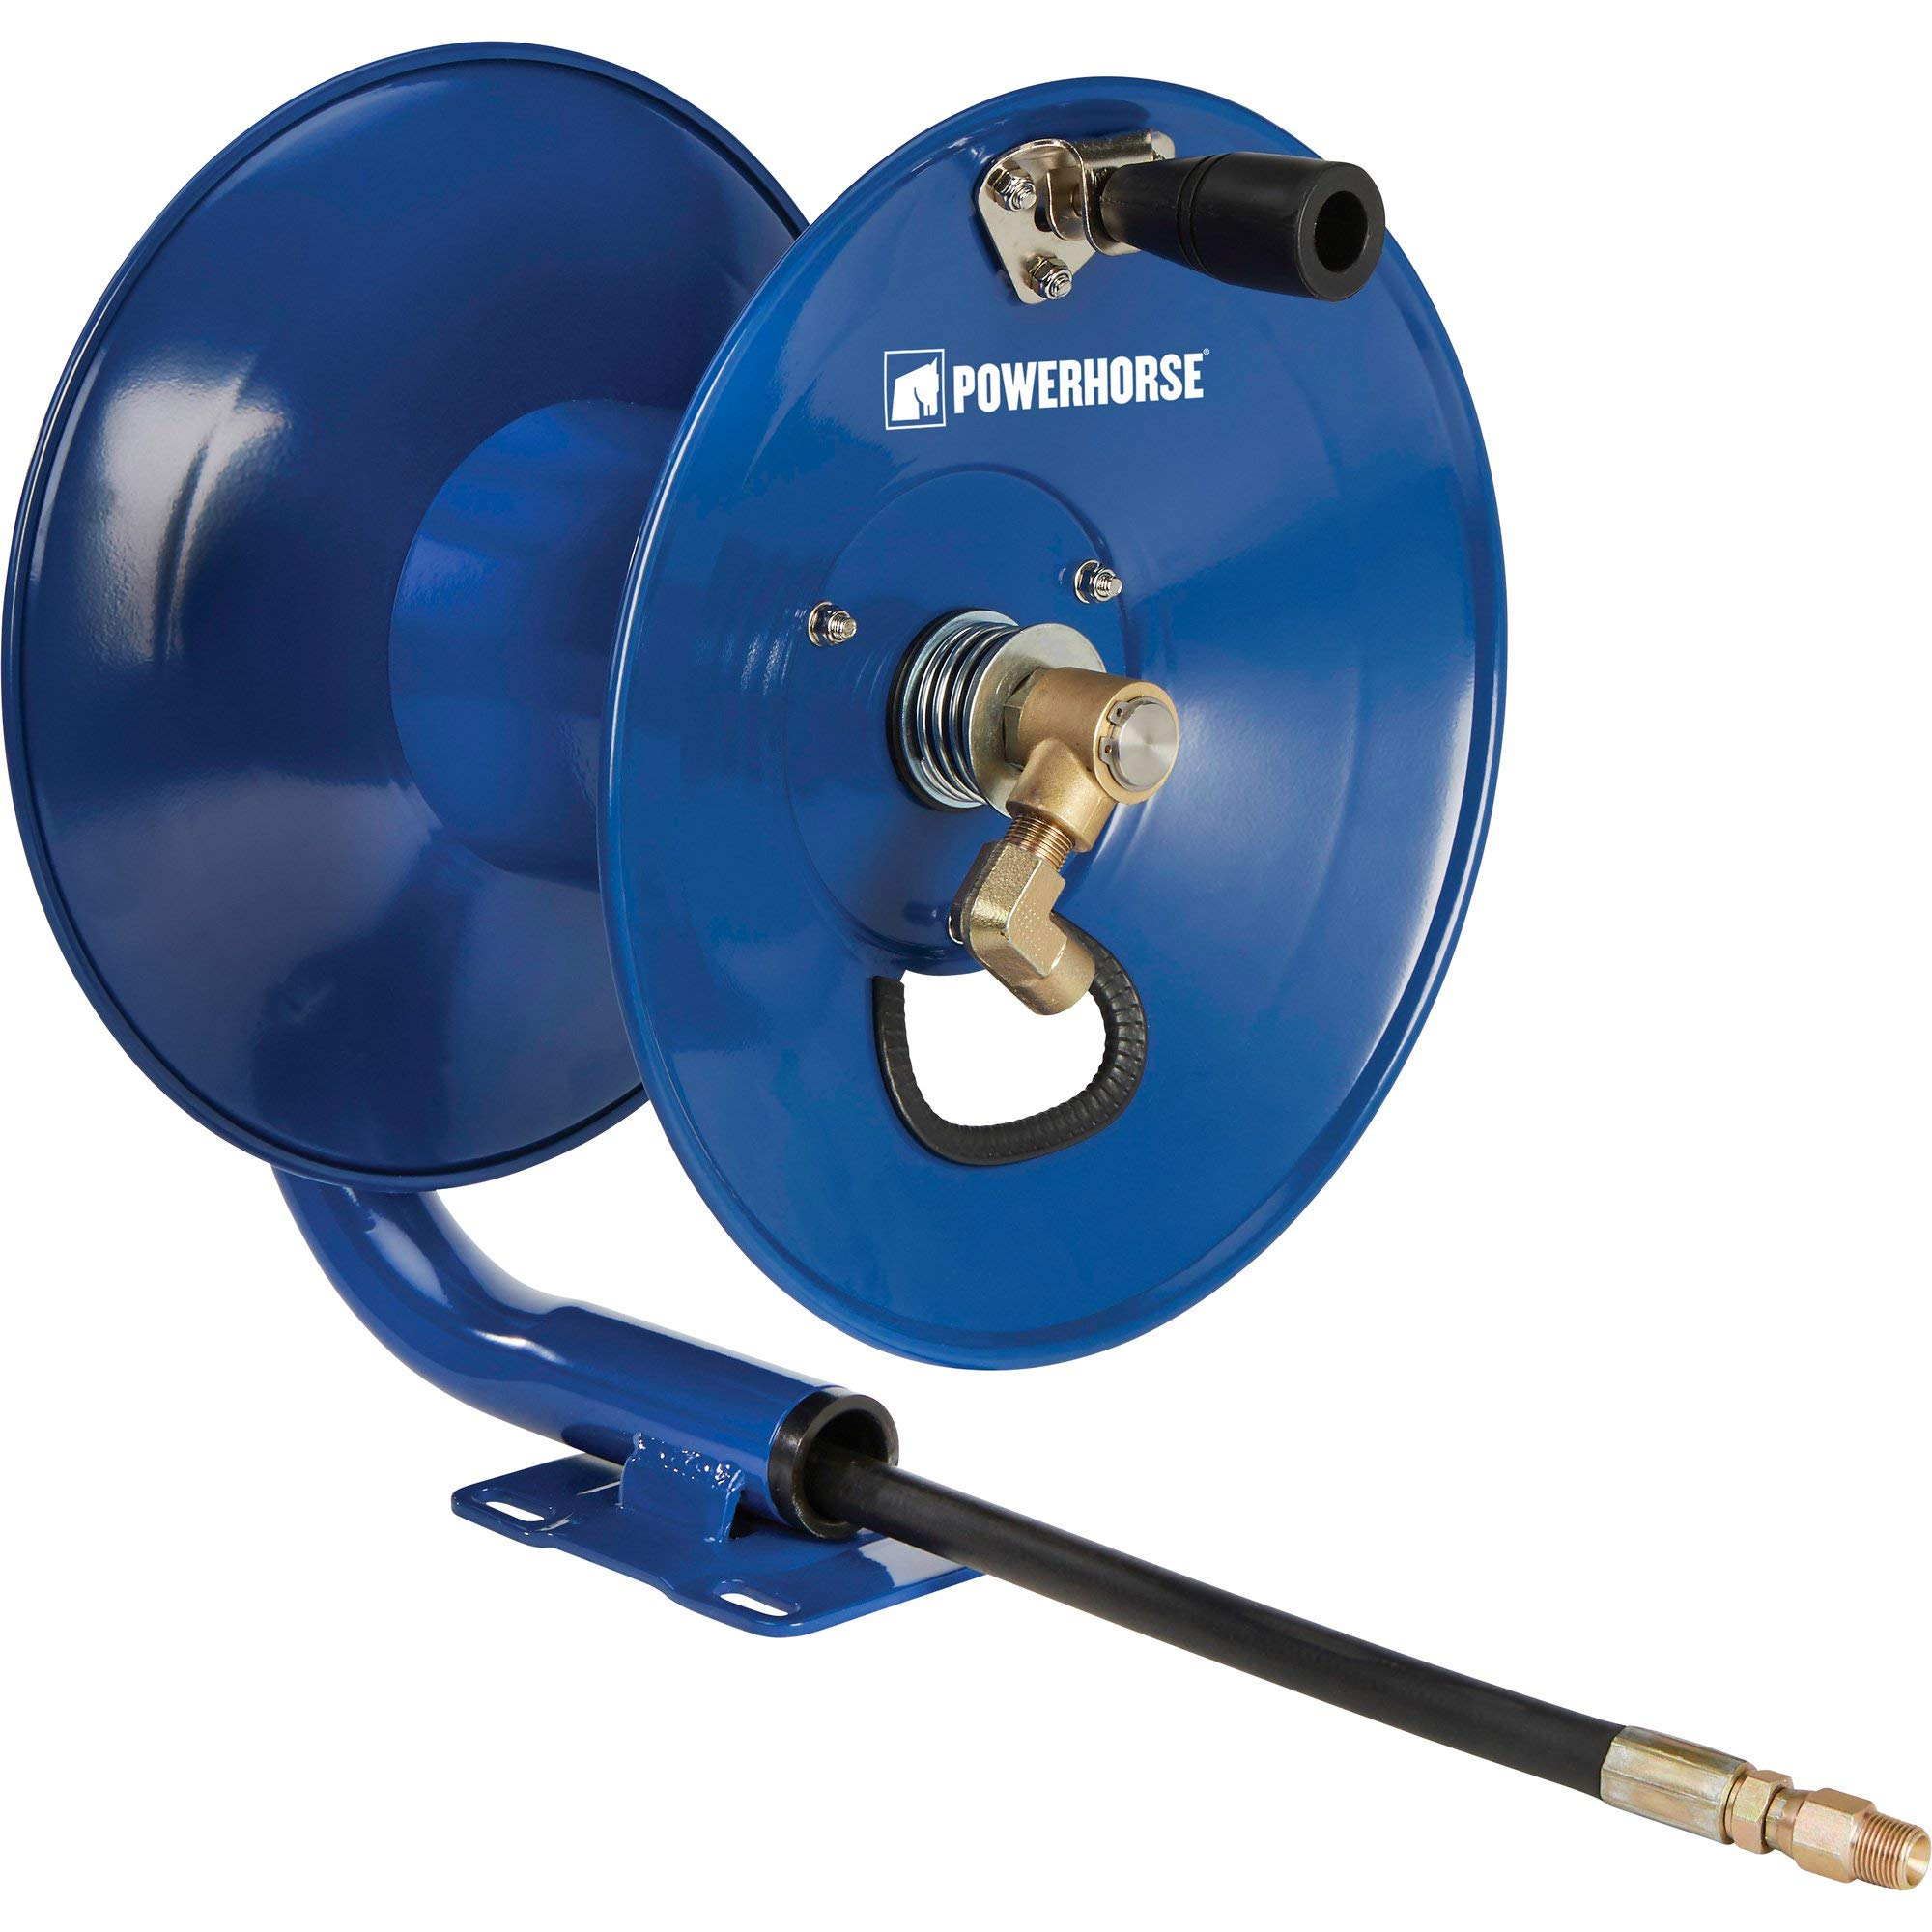 Replacement Parts & Accessories Powerhorse Nonmarking Pressure ...